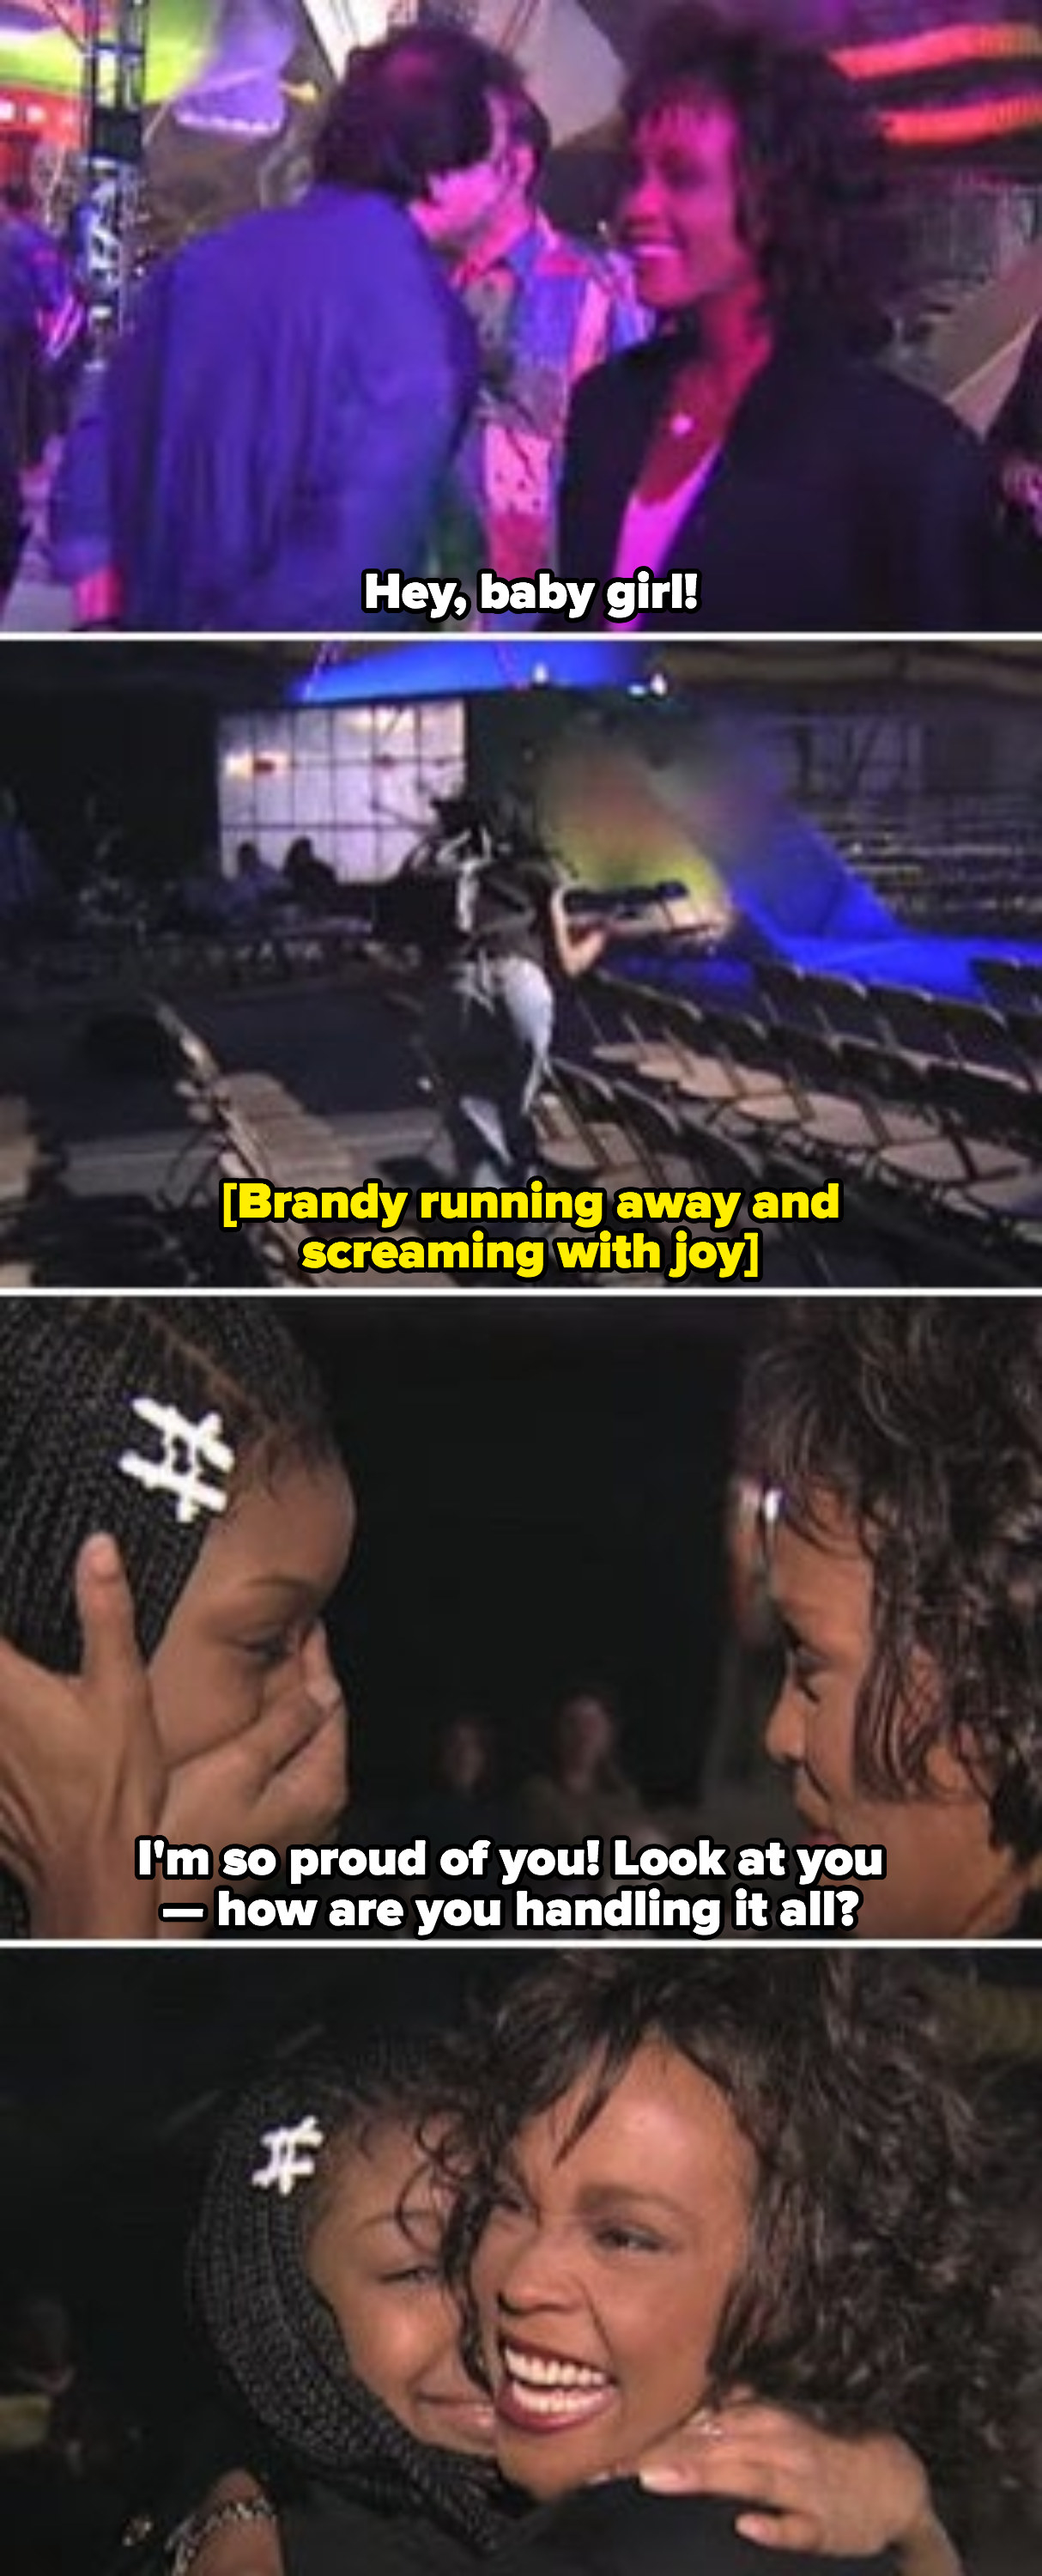 Brandy and Whitney Houston embracing during a tearful first meeting, and Whitney asking Brandy how she's handling the first stages of fame